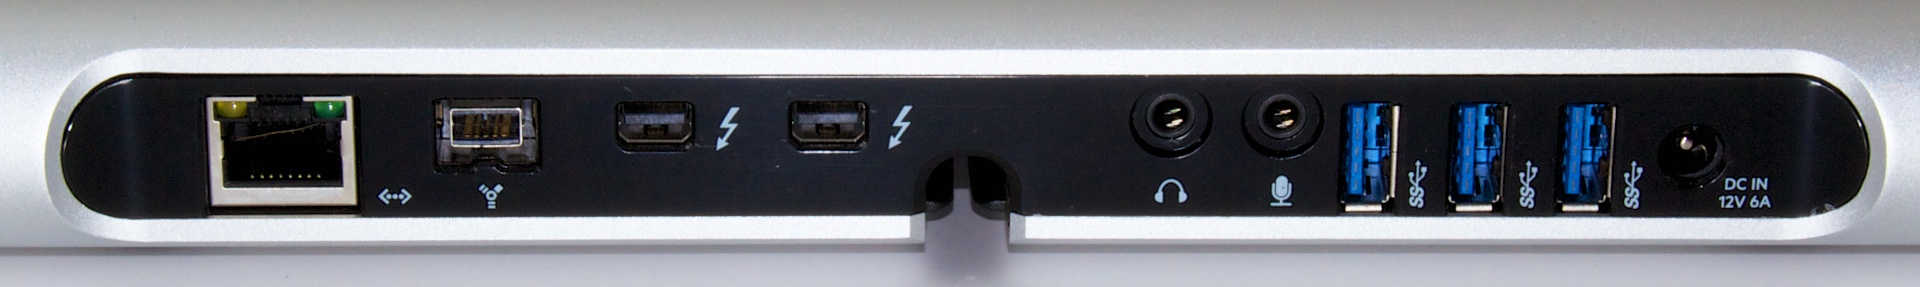 Ports on the back of the Thunderbolt Express Dock. Those USB 3.0 ports are limited to 2.5Gbps.